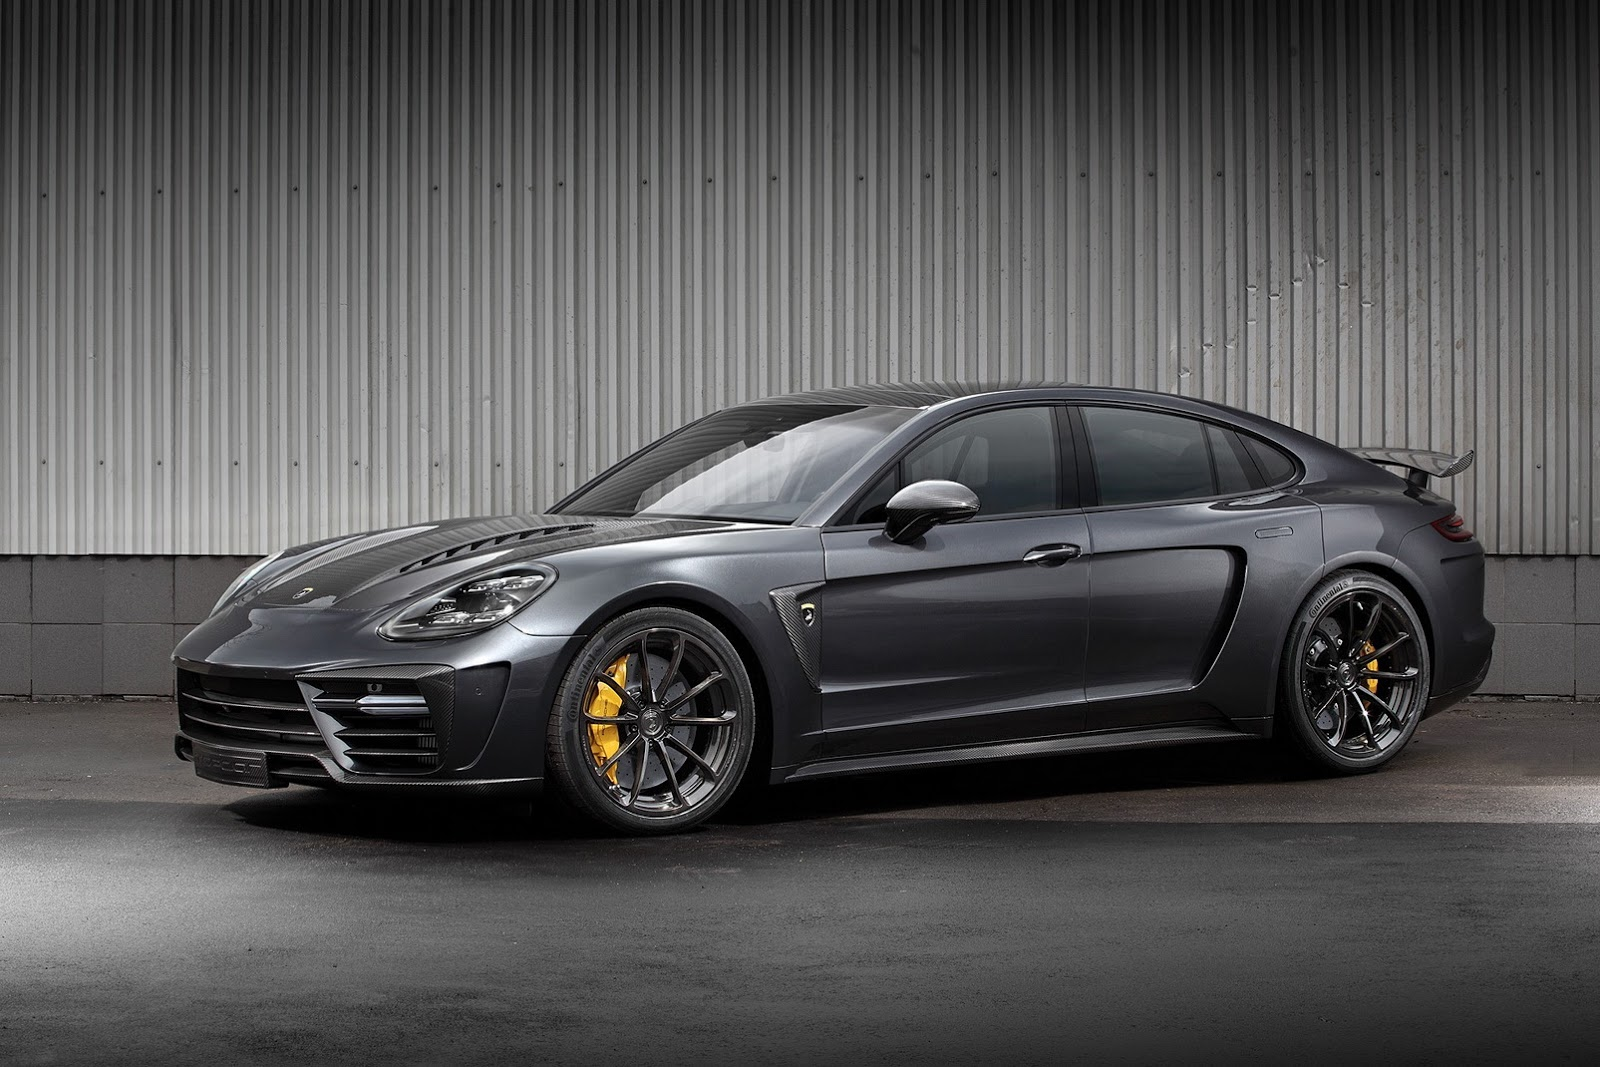 new porsche panamera turbo topcar tuning has custom interior costs 235 000 autoevolution. Black Bedroom Furniture Sets. Home Design Ideas